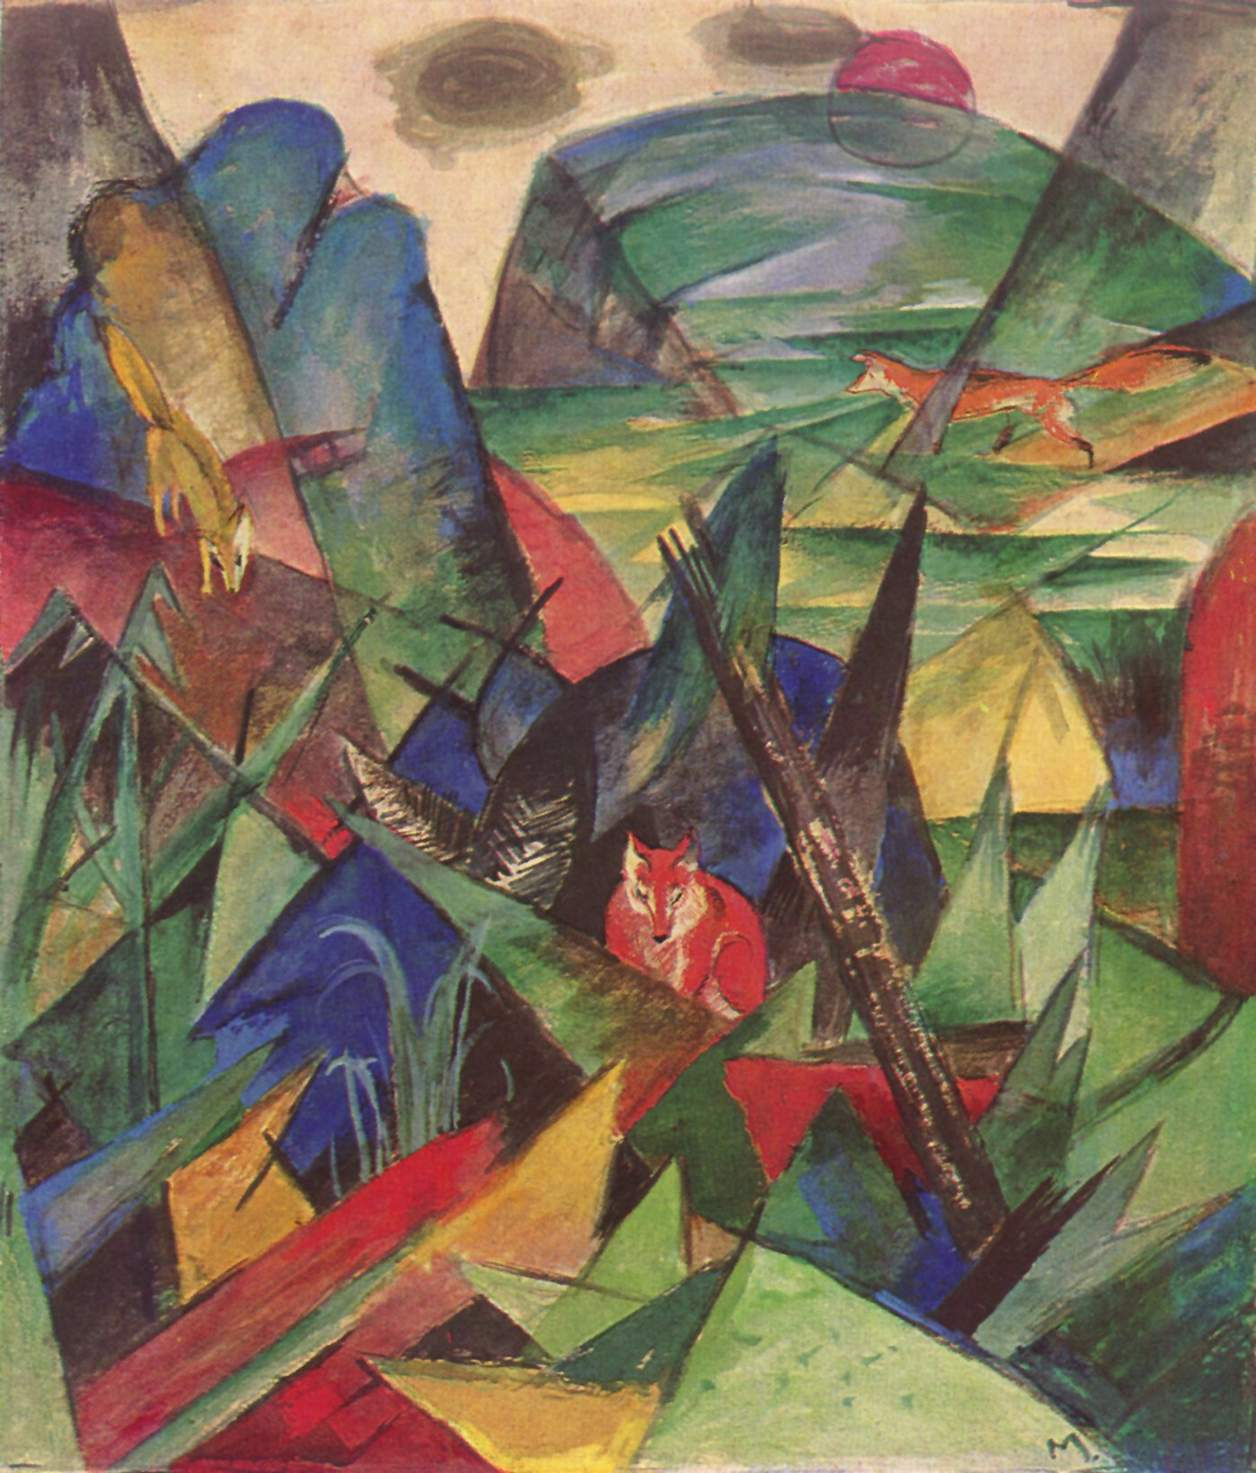 https://i1.wp.com/upload.wikimedia.org/wikipedia/commons/b/b5/Franz_Marc_011.jpg